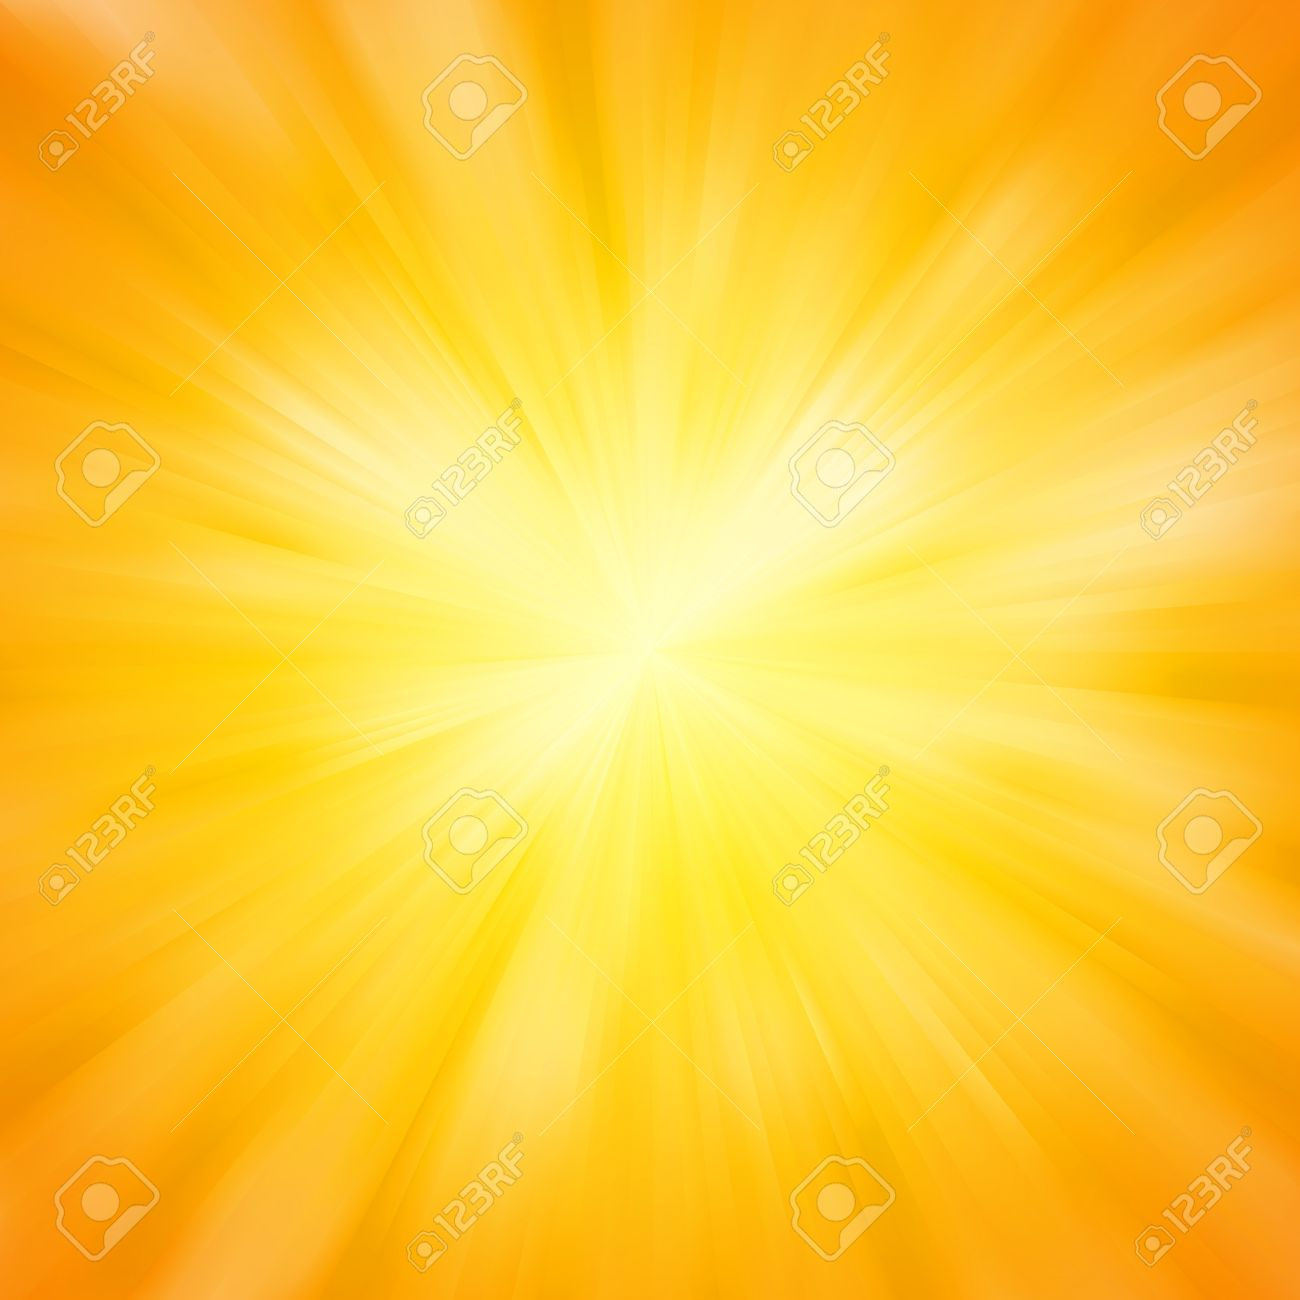 Warm Sun Light. Royalty Free Cliparts, Vectors, And Stock ...